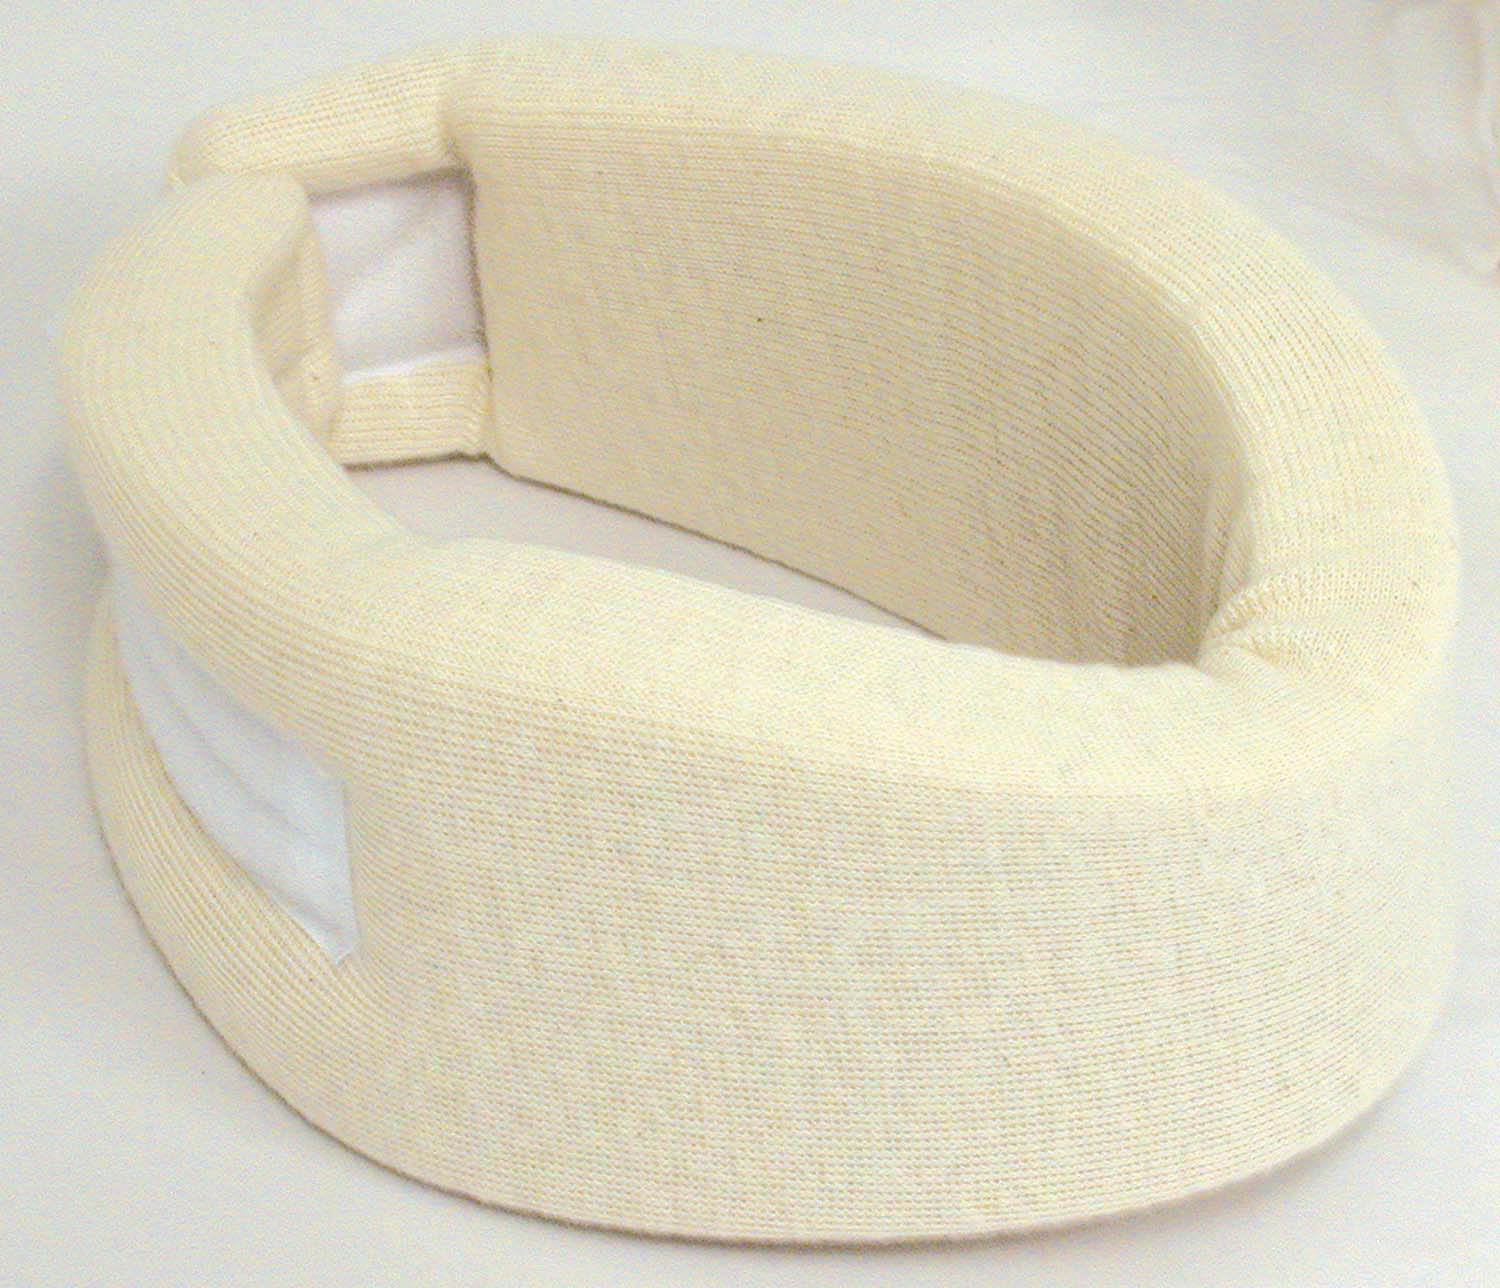 universal-firm-foam-cervical-collar-3-631-6057-0042-lr.jpg